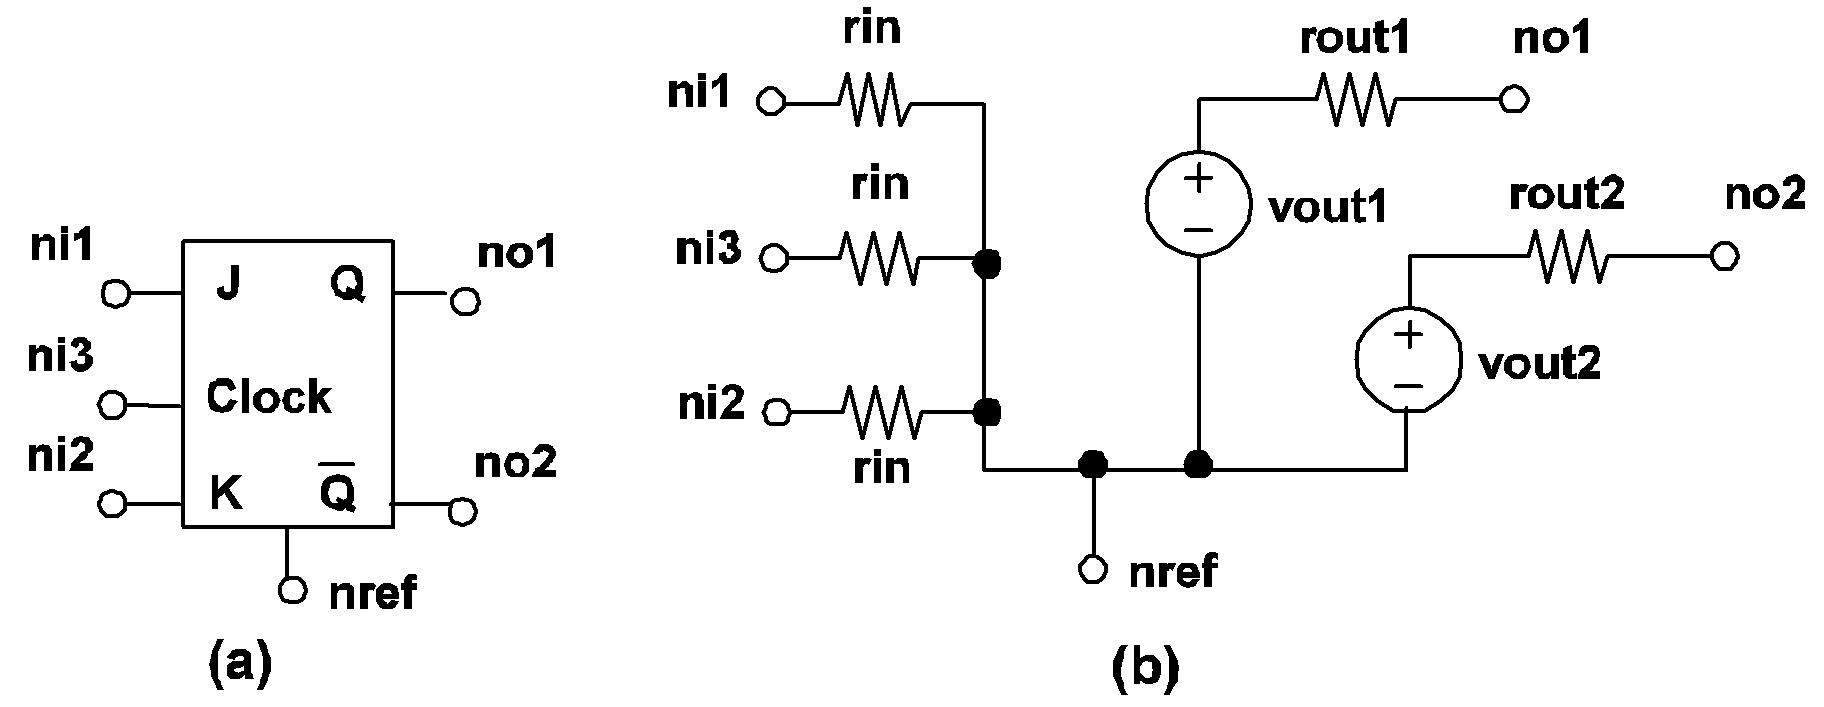 Simplis Reference Device Models Used In J K Flip Flop Circuit Diagram 414 Clocked Model A Symbol For B